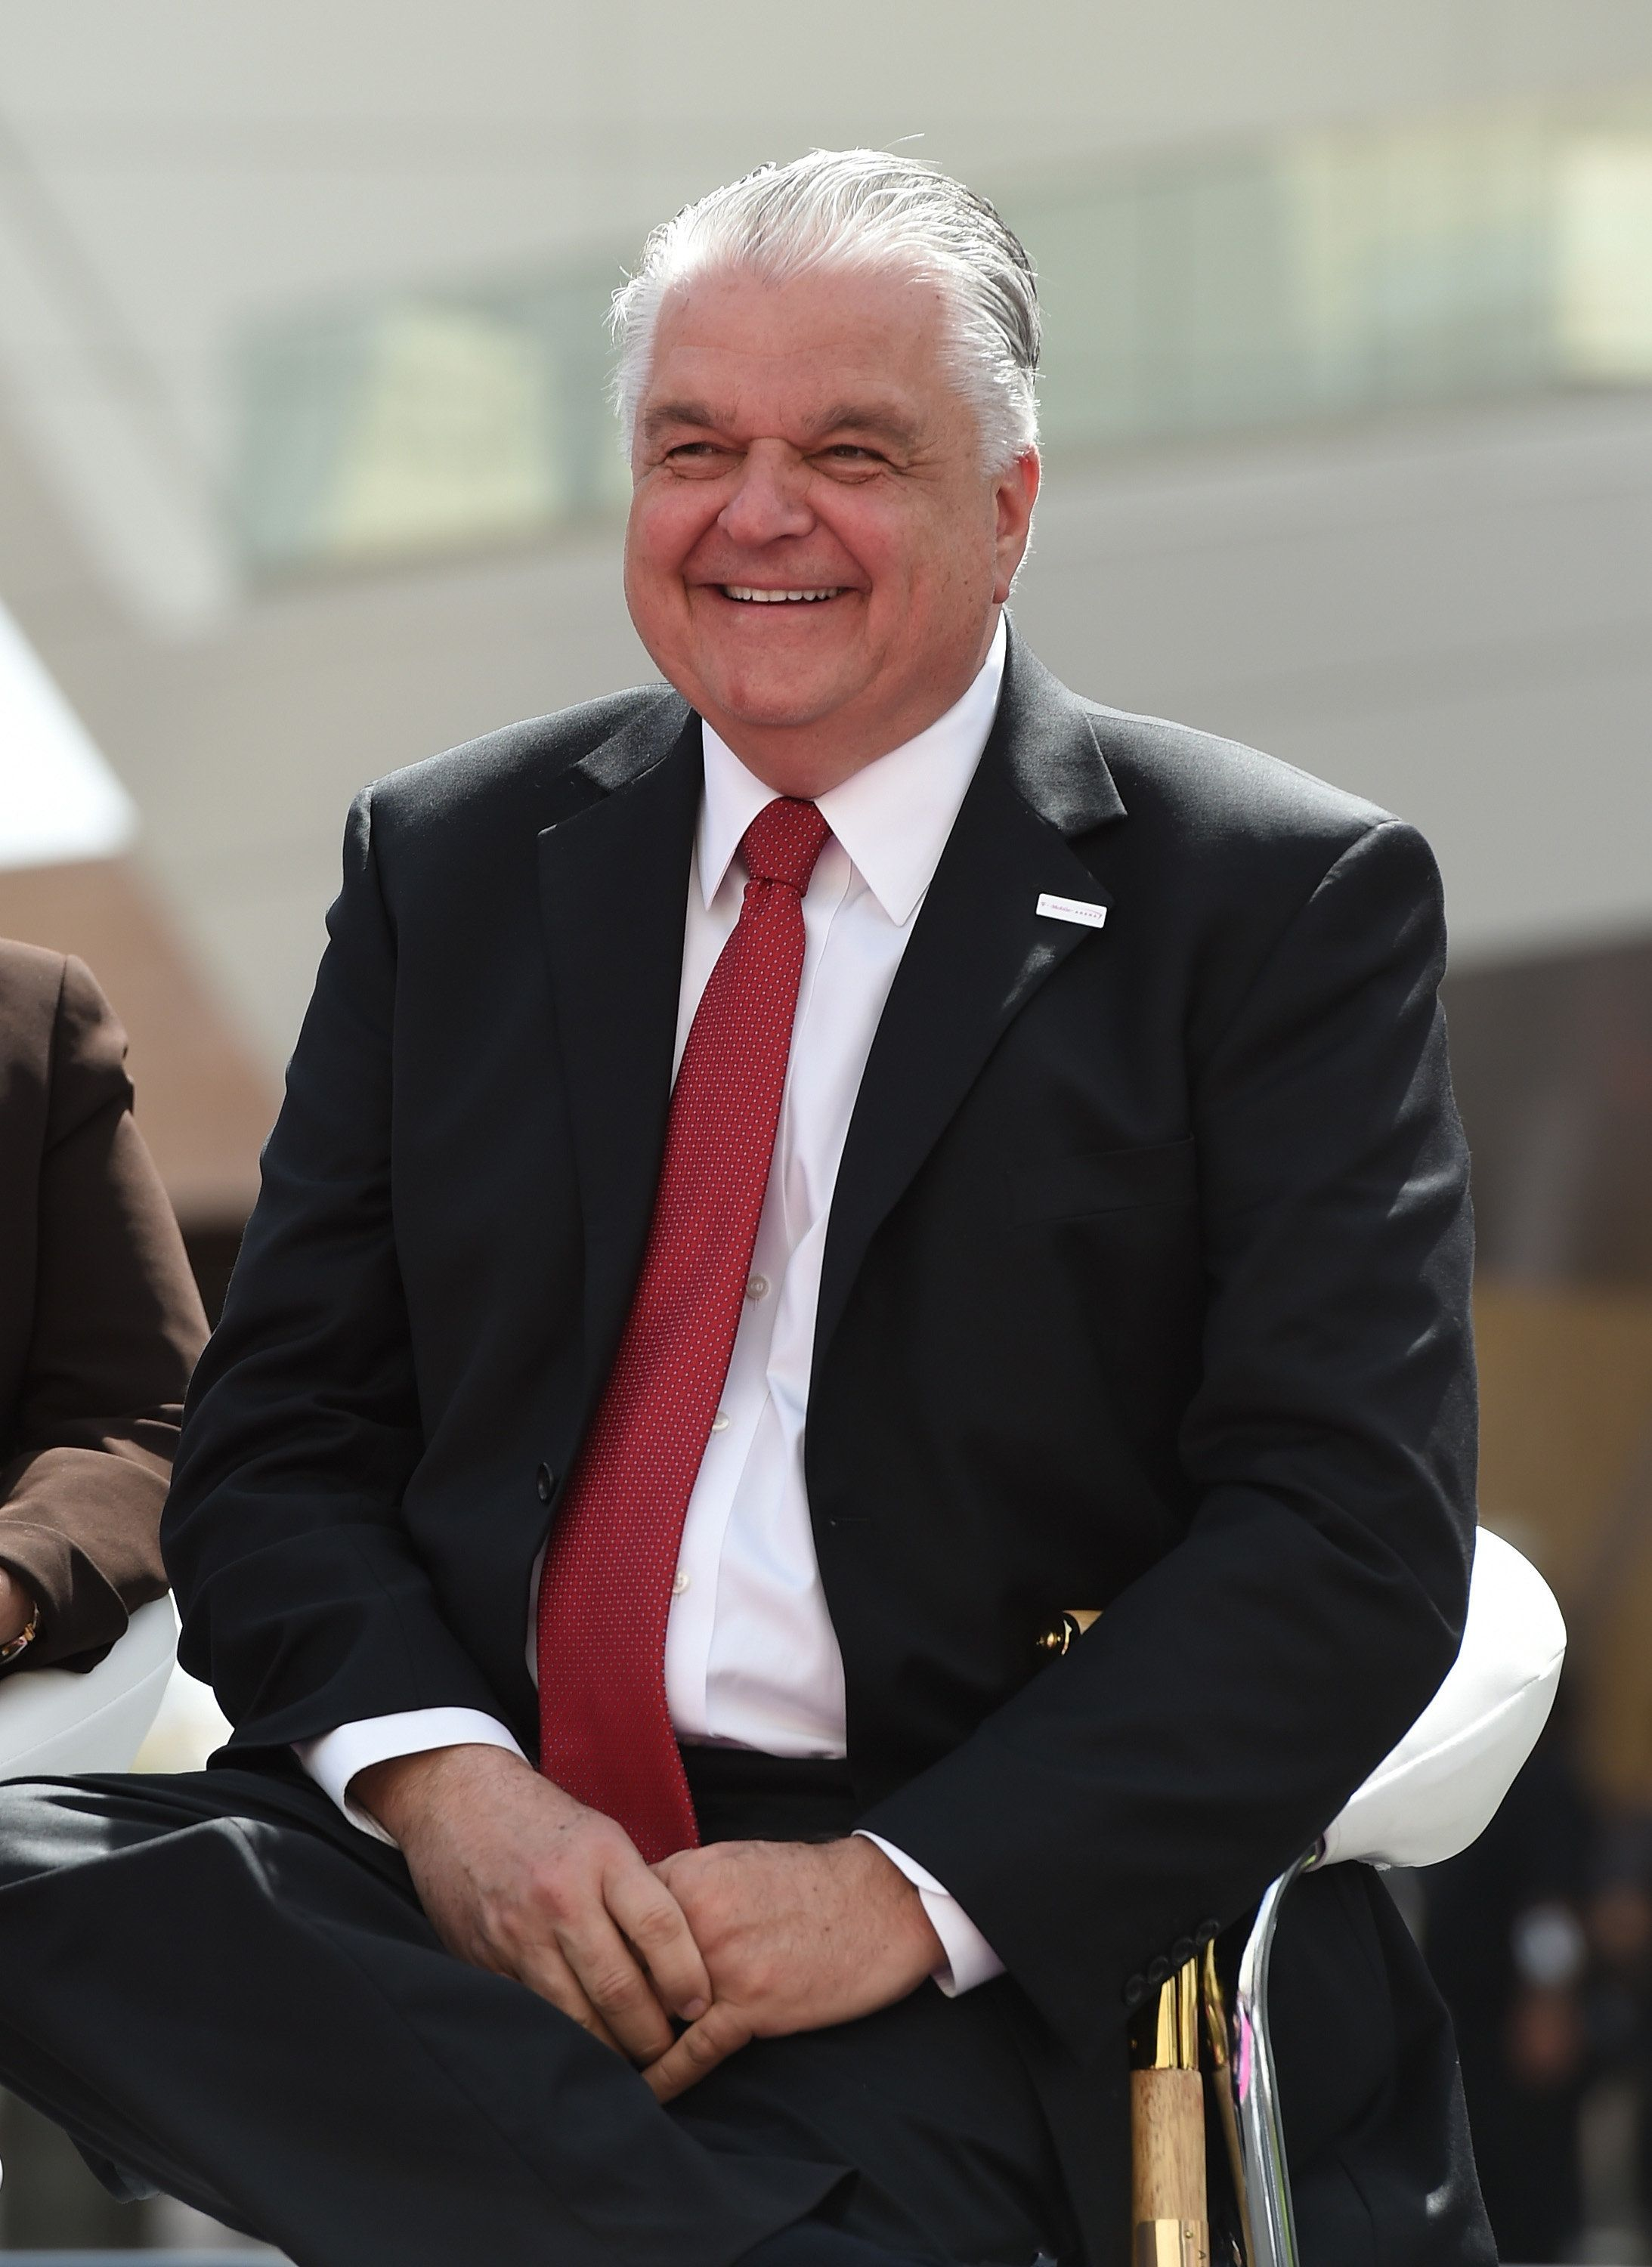 LAS VEGAS, NEVADA - APRIL 06:  Clark County Commission Chairman Steve Sisolak smiles during the T-Mobile Arena grand opening news conference on the Las Vegas Strip on April 6, 2016 in Las Vegas, Nevada.  (Photo by Ethan Miller/Getty Images for MGM Resorts International)